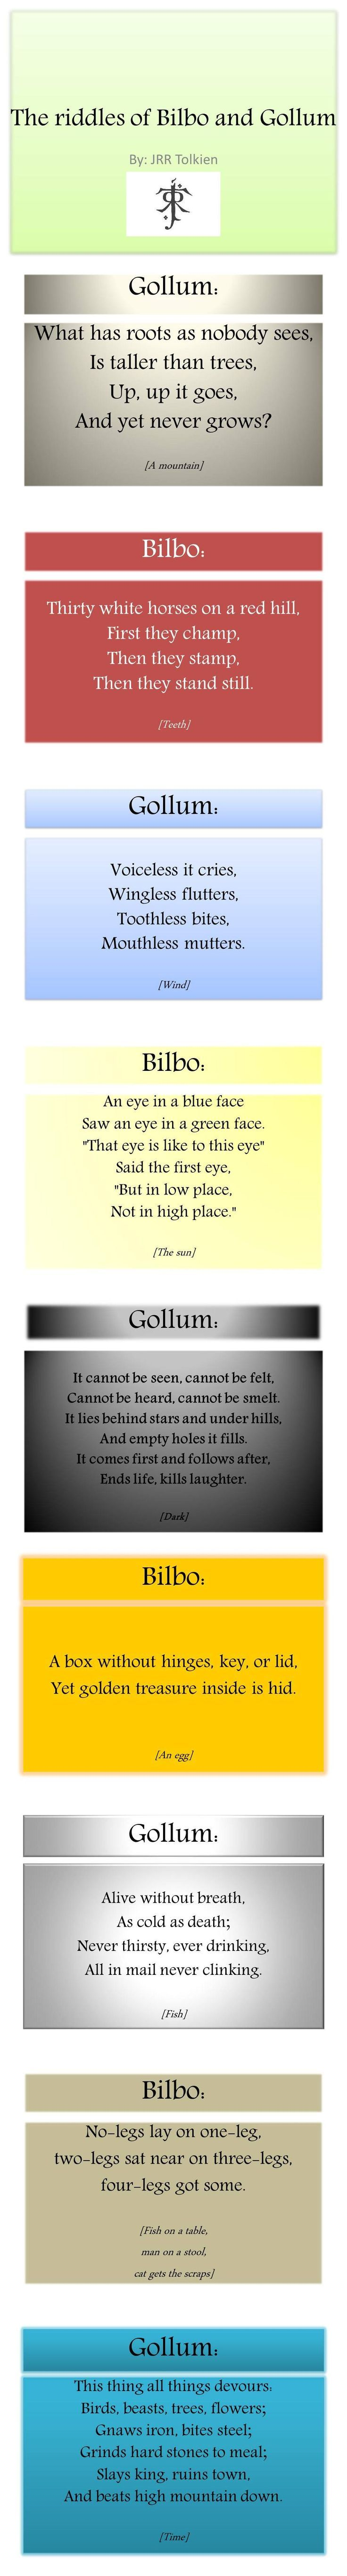 "Riddles Tolkien. The last one is by Bilbo and he asks Gollum, ""What is in my pocket?"""